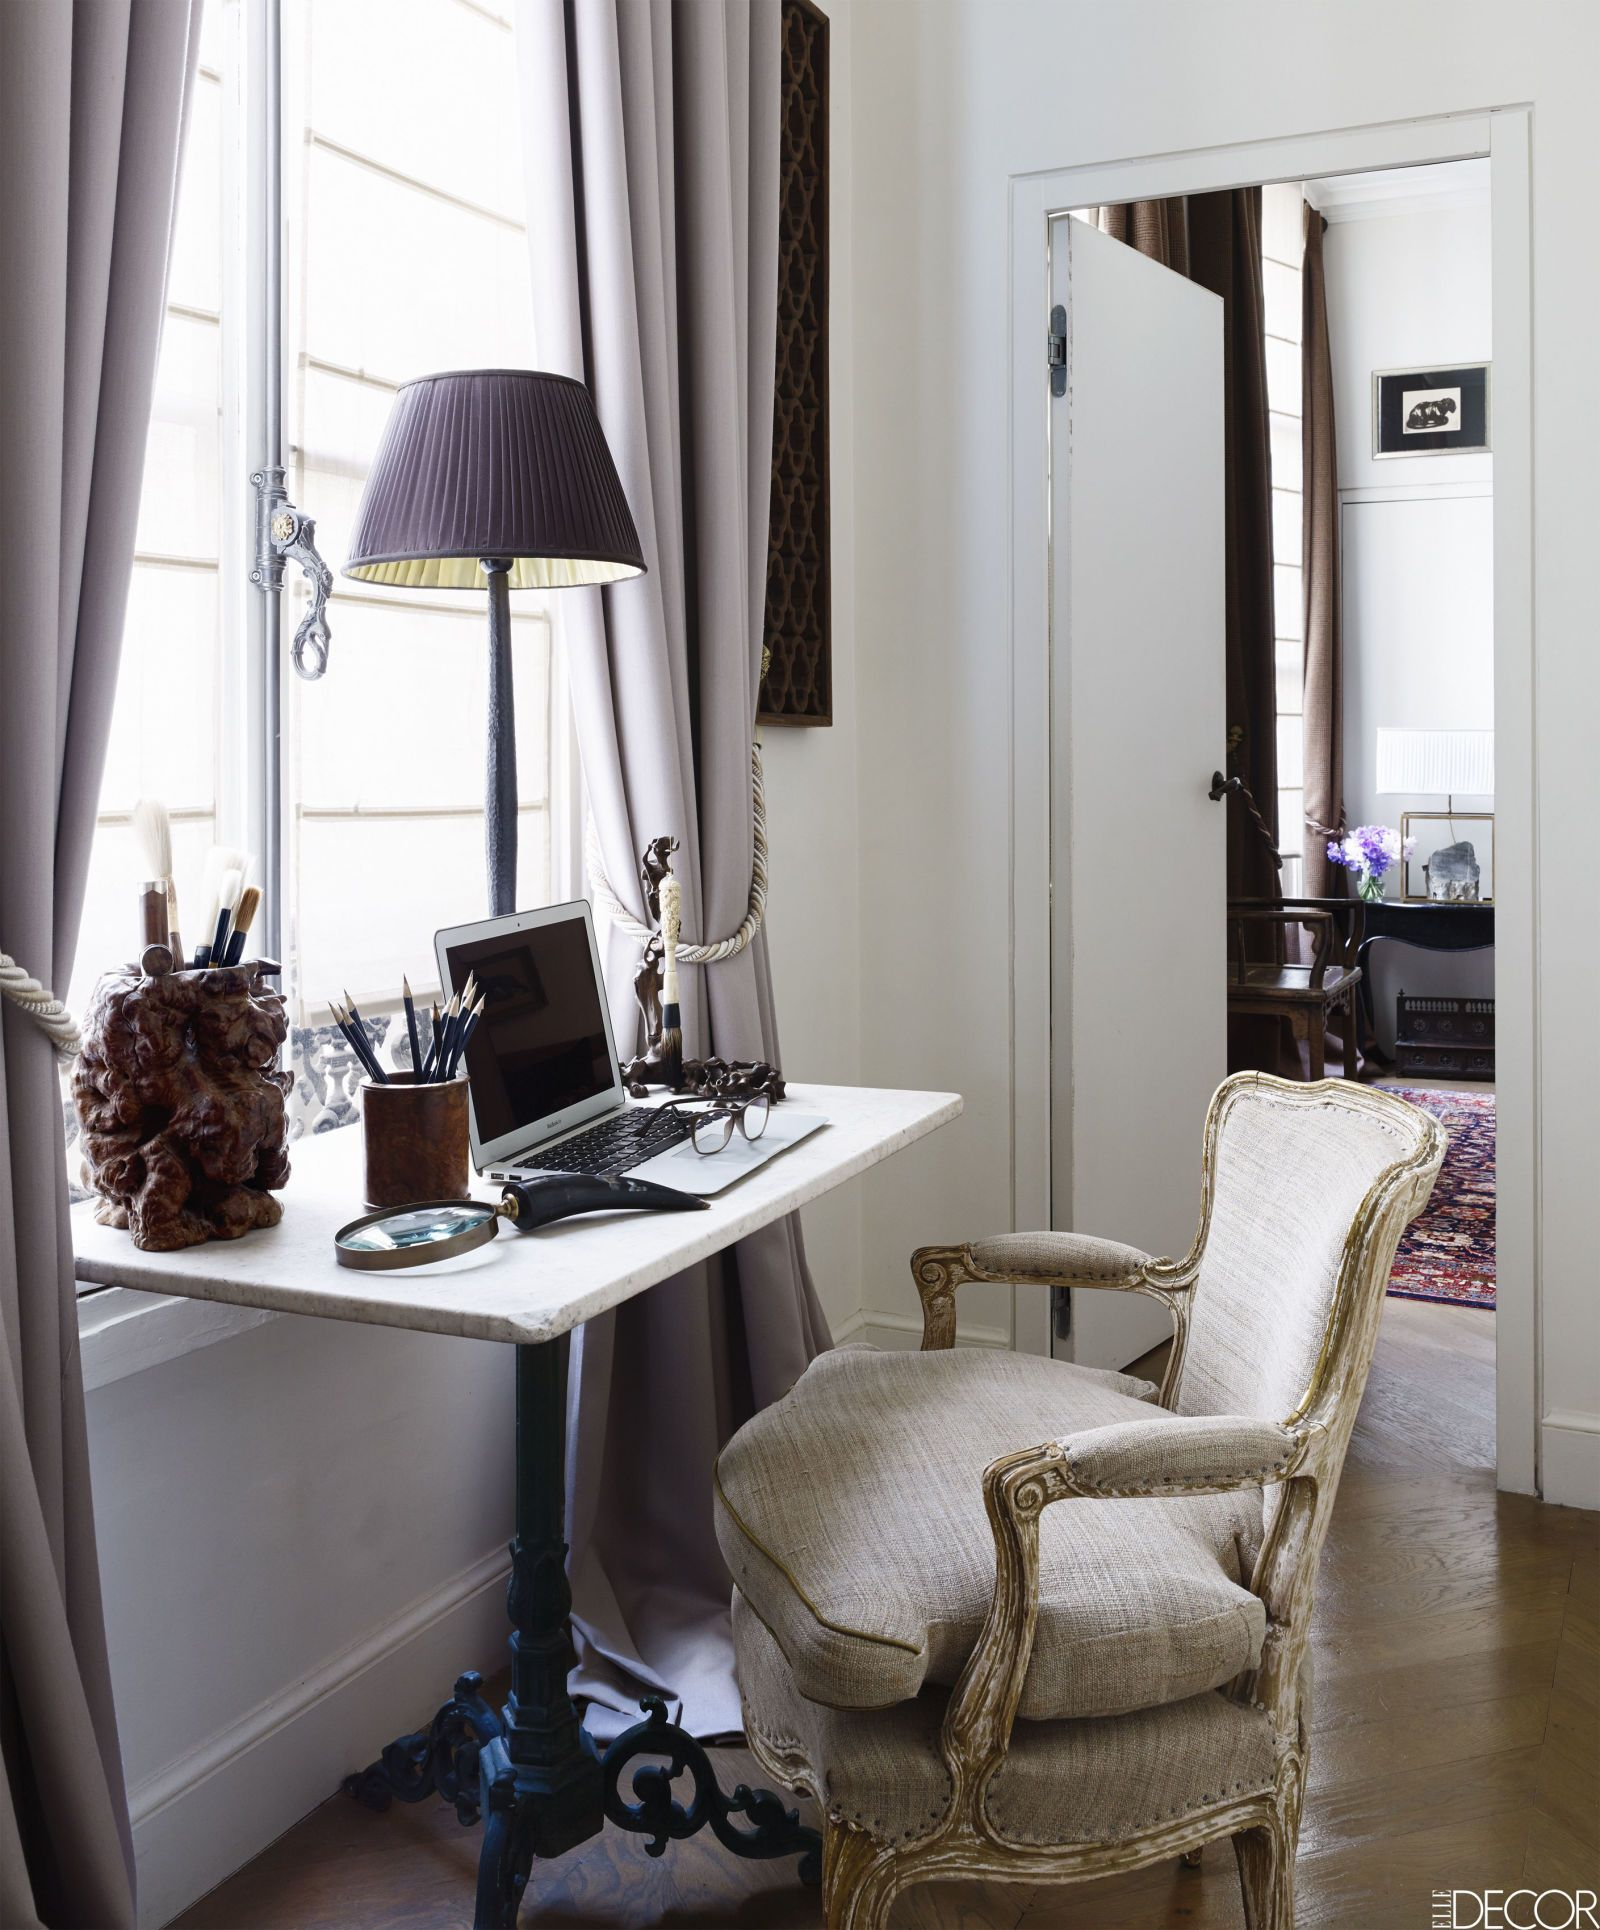 In His New Paris Apartment Designer Christopher Noto Gives Free Rein To Love Of Asian Furniture Artifacts And Handicrafts Without For A Moment